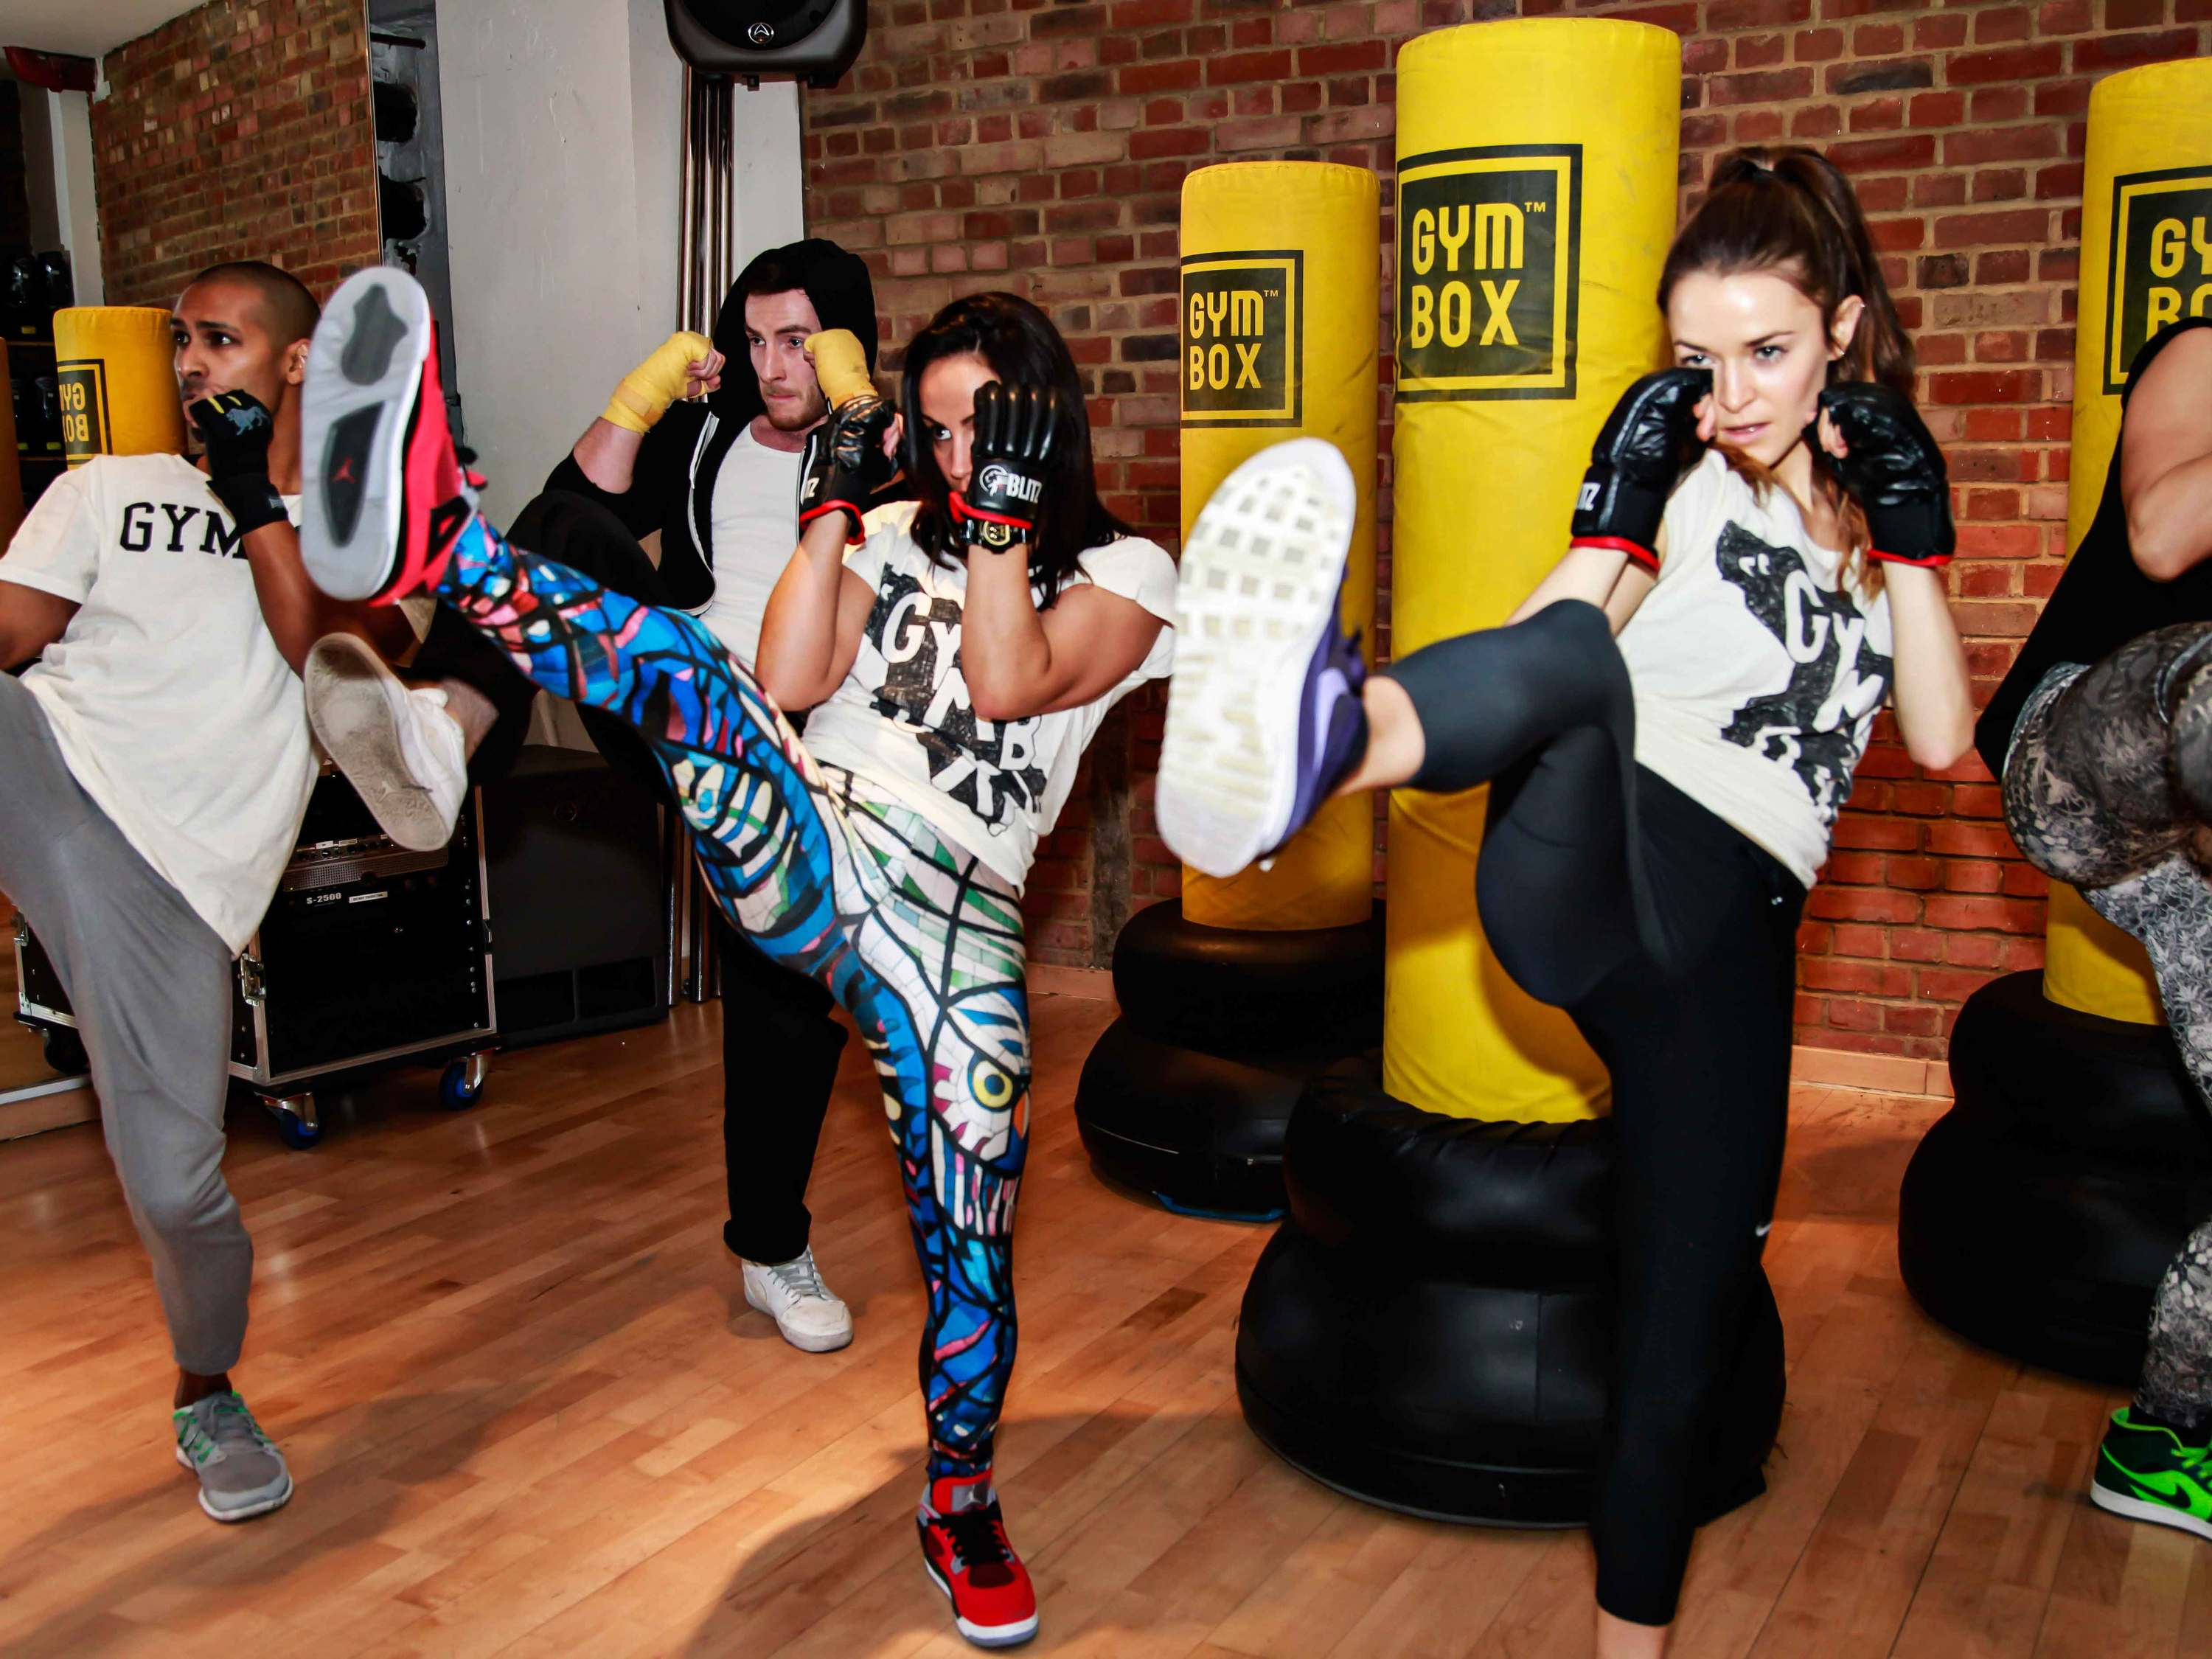 The best boxing classes in London, Fightklub, Gymbox